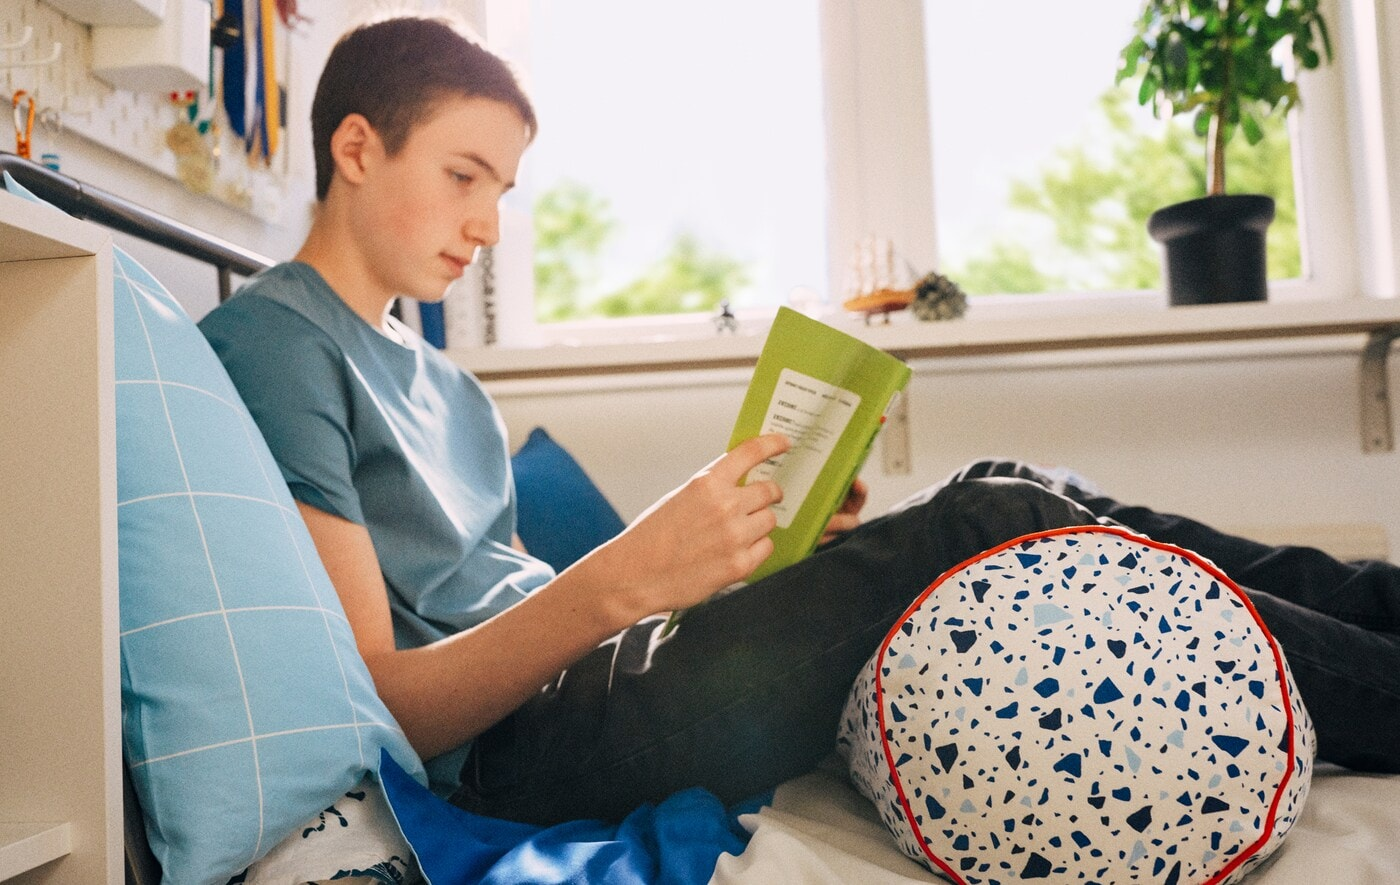 A schoolchild sits reading on his bed, his back leaning against a pillow and his legs supported by a MÖJLIGHET cushion.